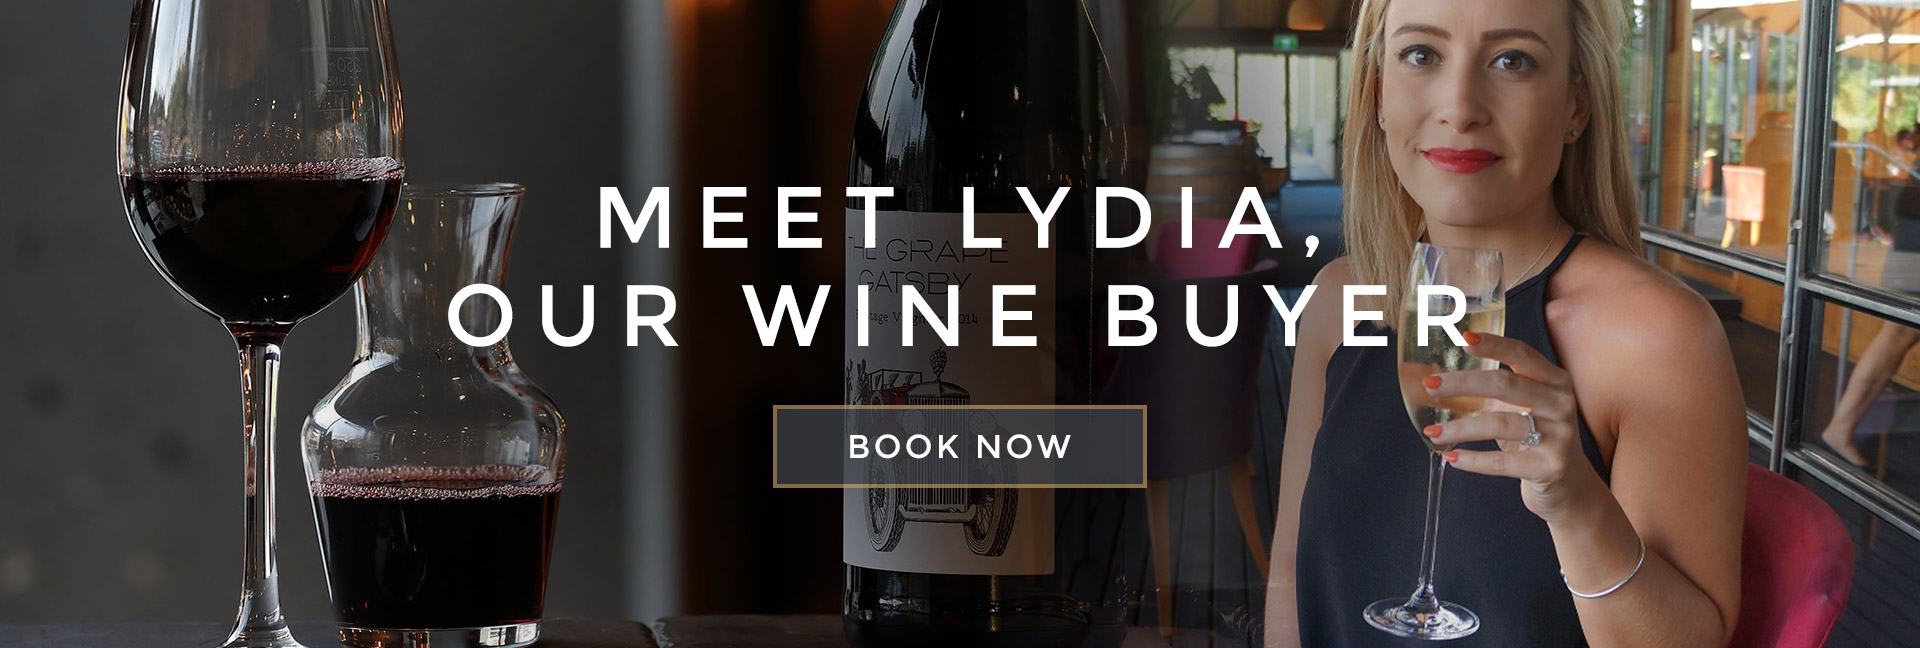 Meet Lydia, our wine buyer at All Bar One Newhall Street Birmingham